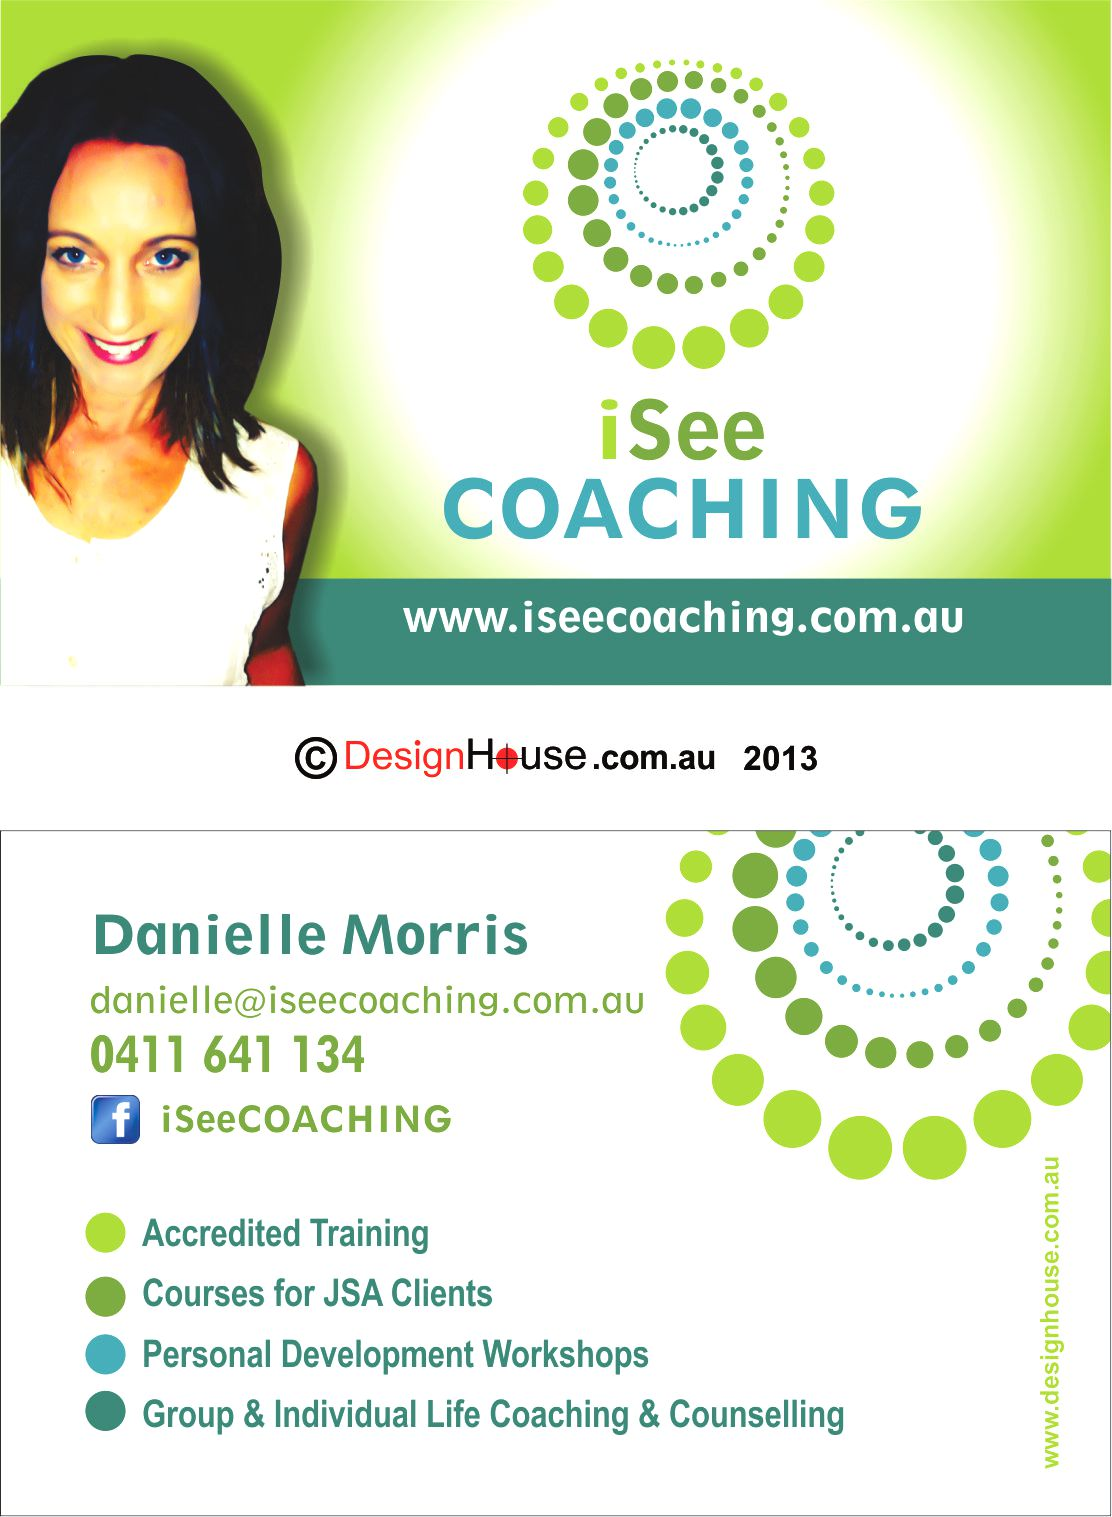 I_See_Coaching_business_cards - Design HouseDesign House